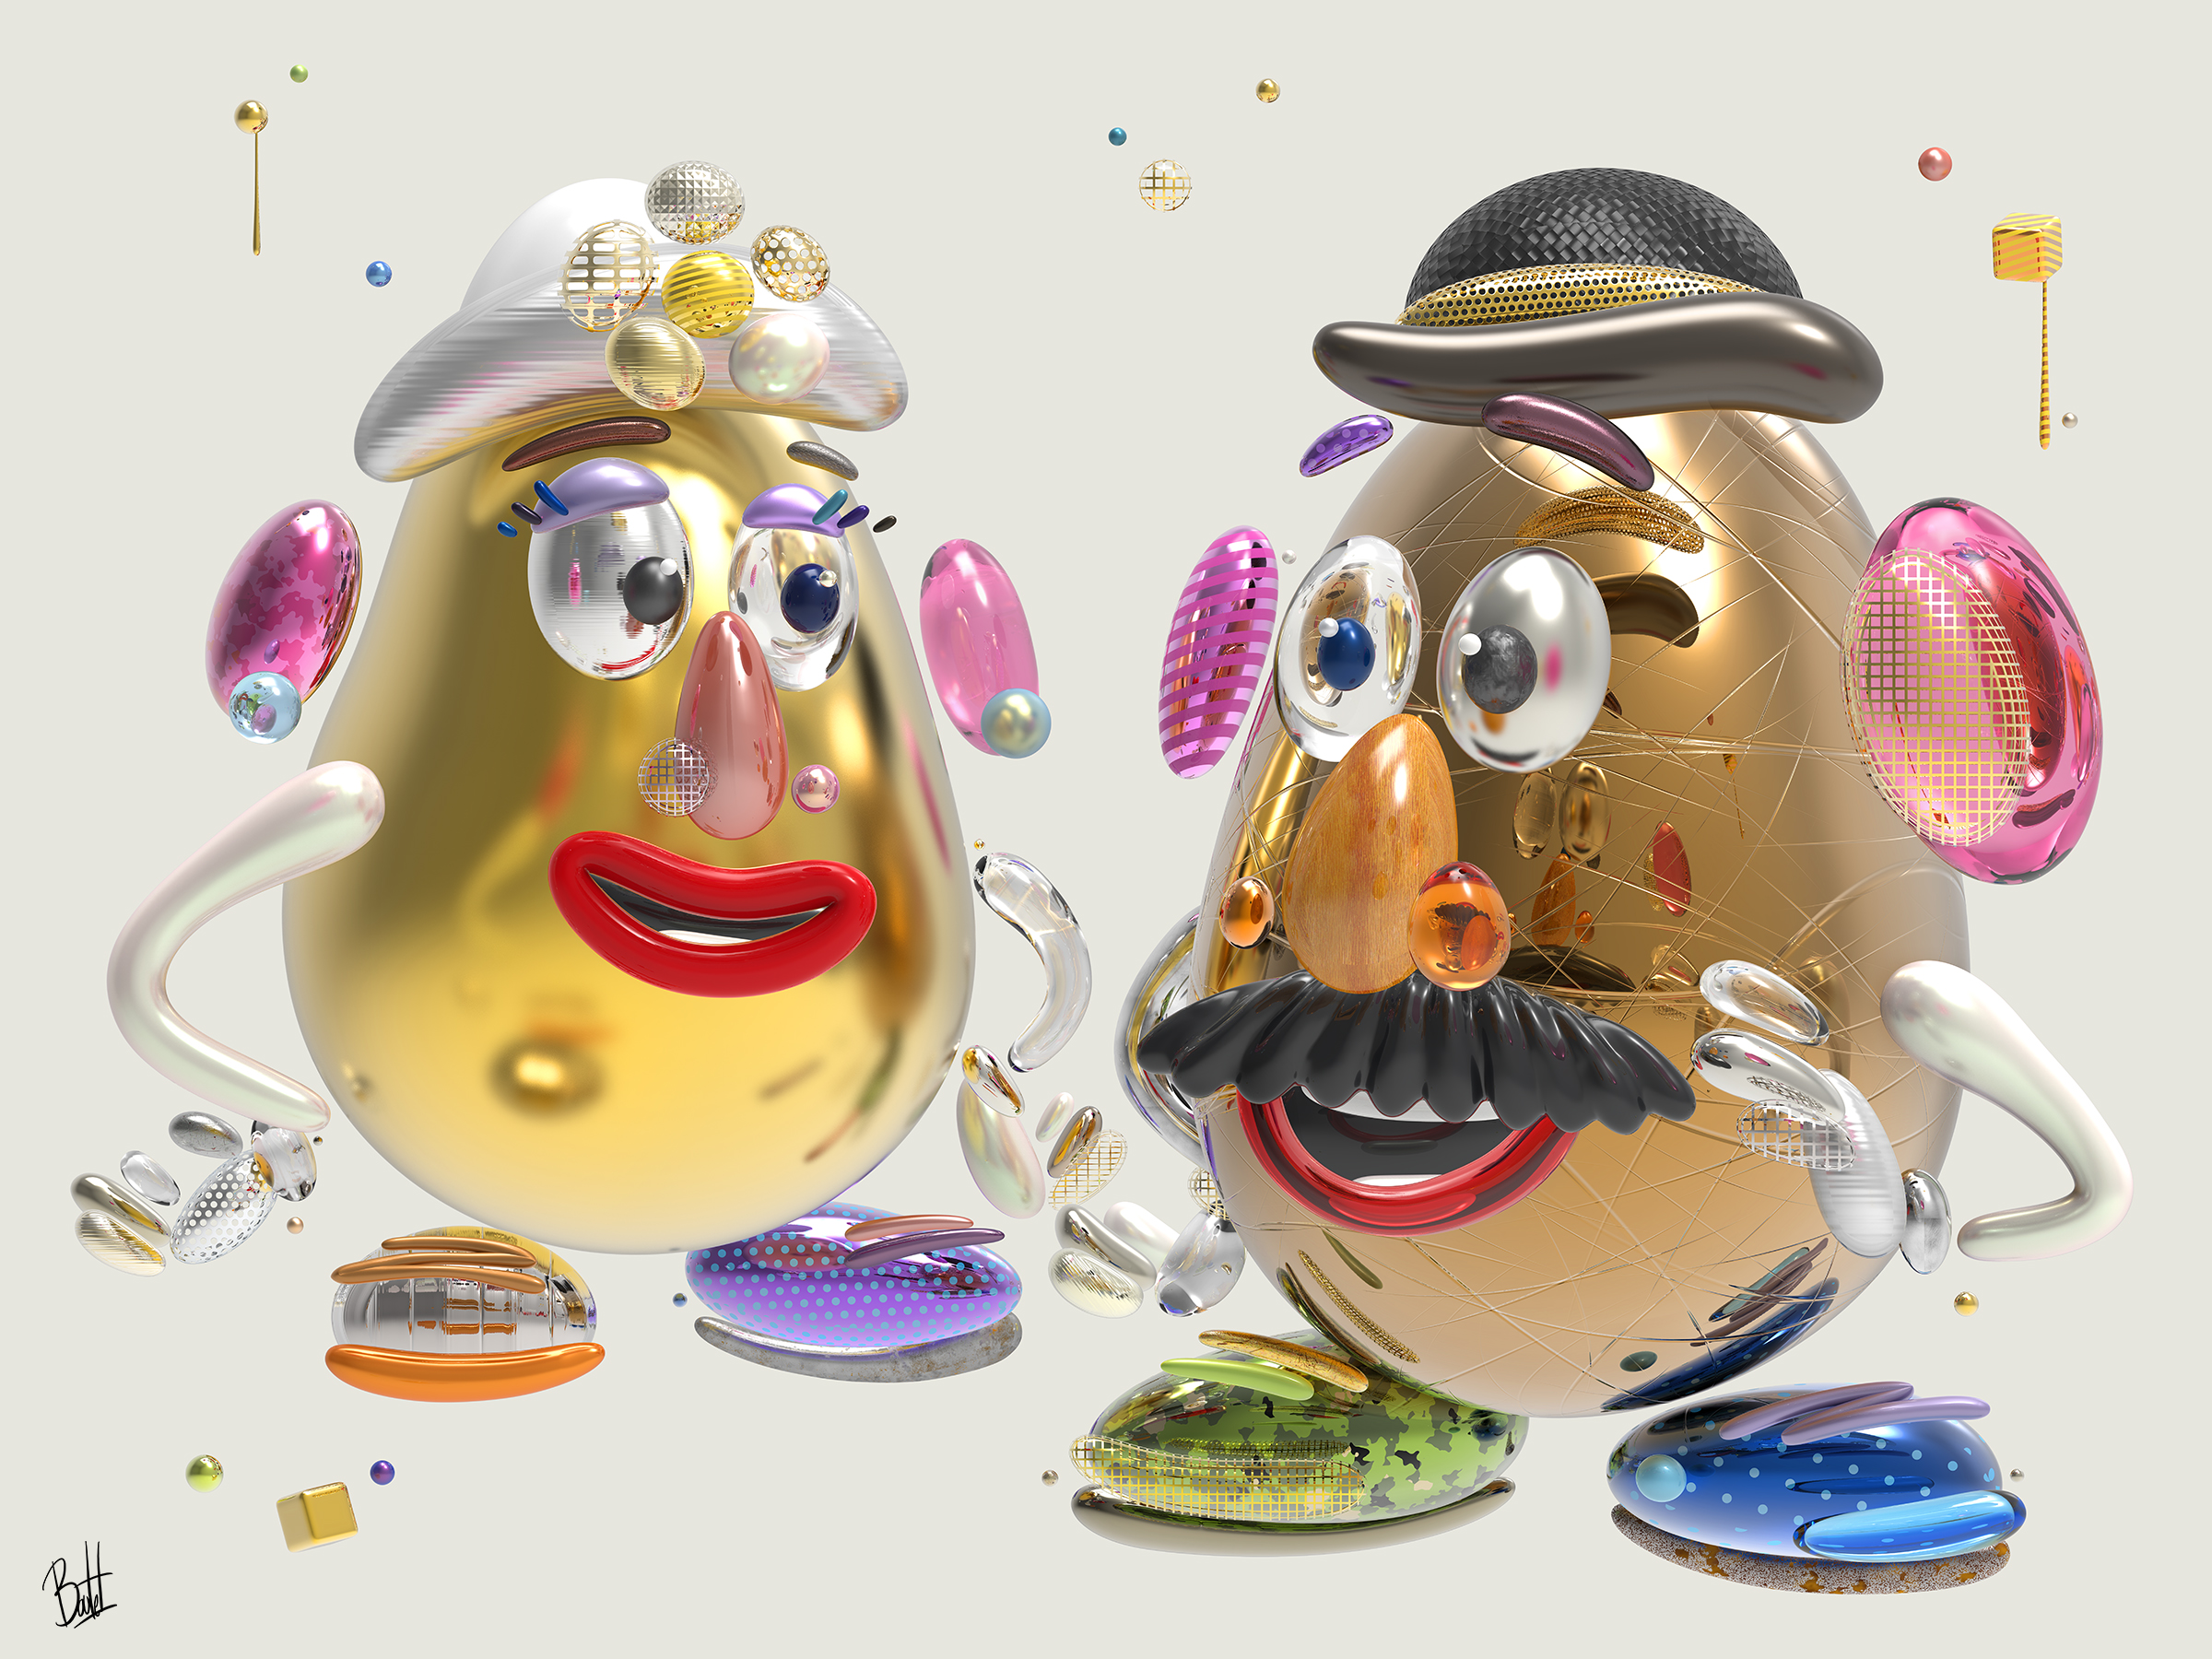 mr-mrs-potato-head-36x48